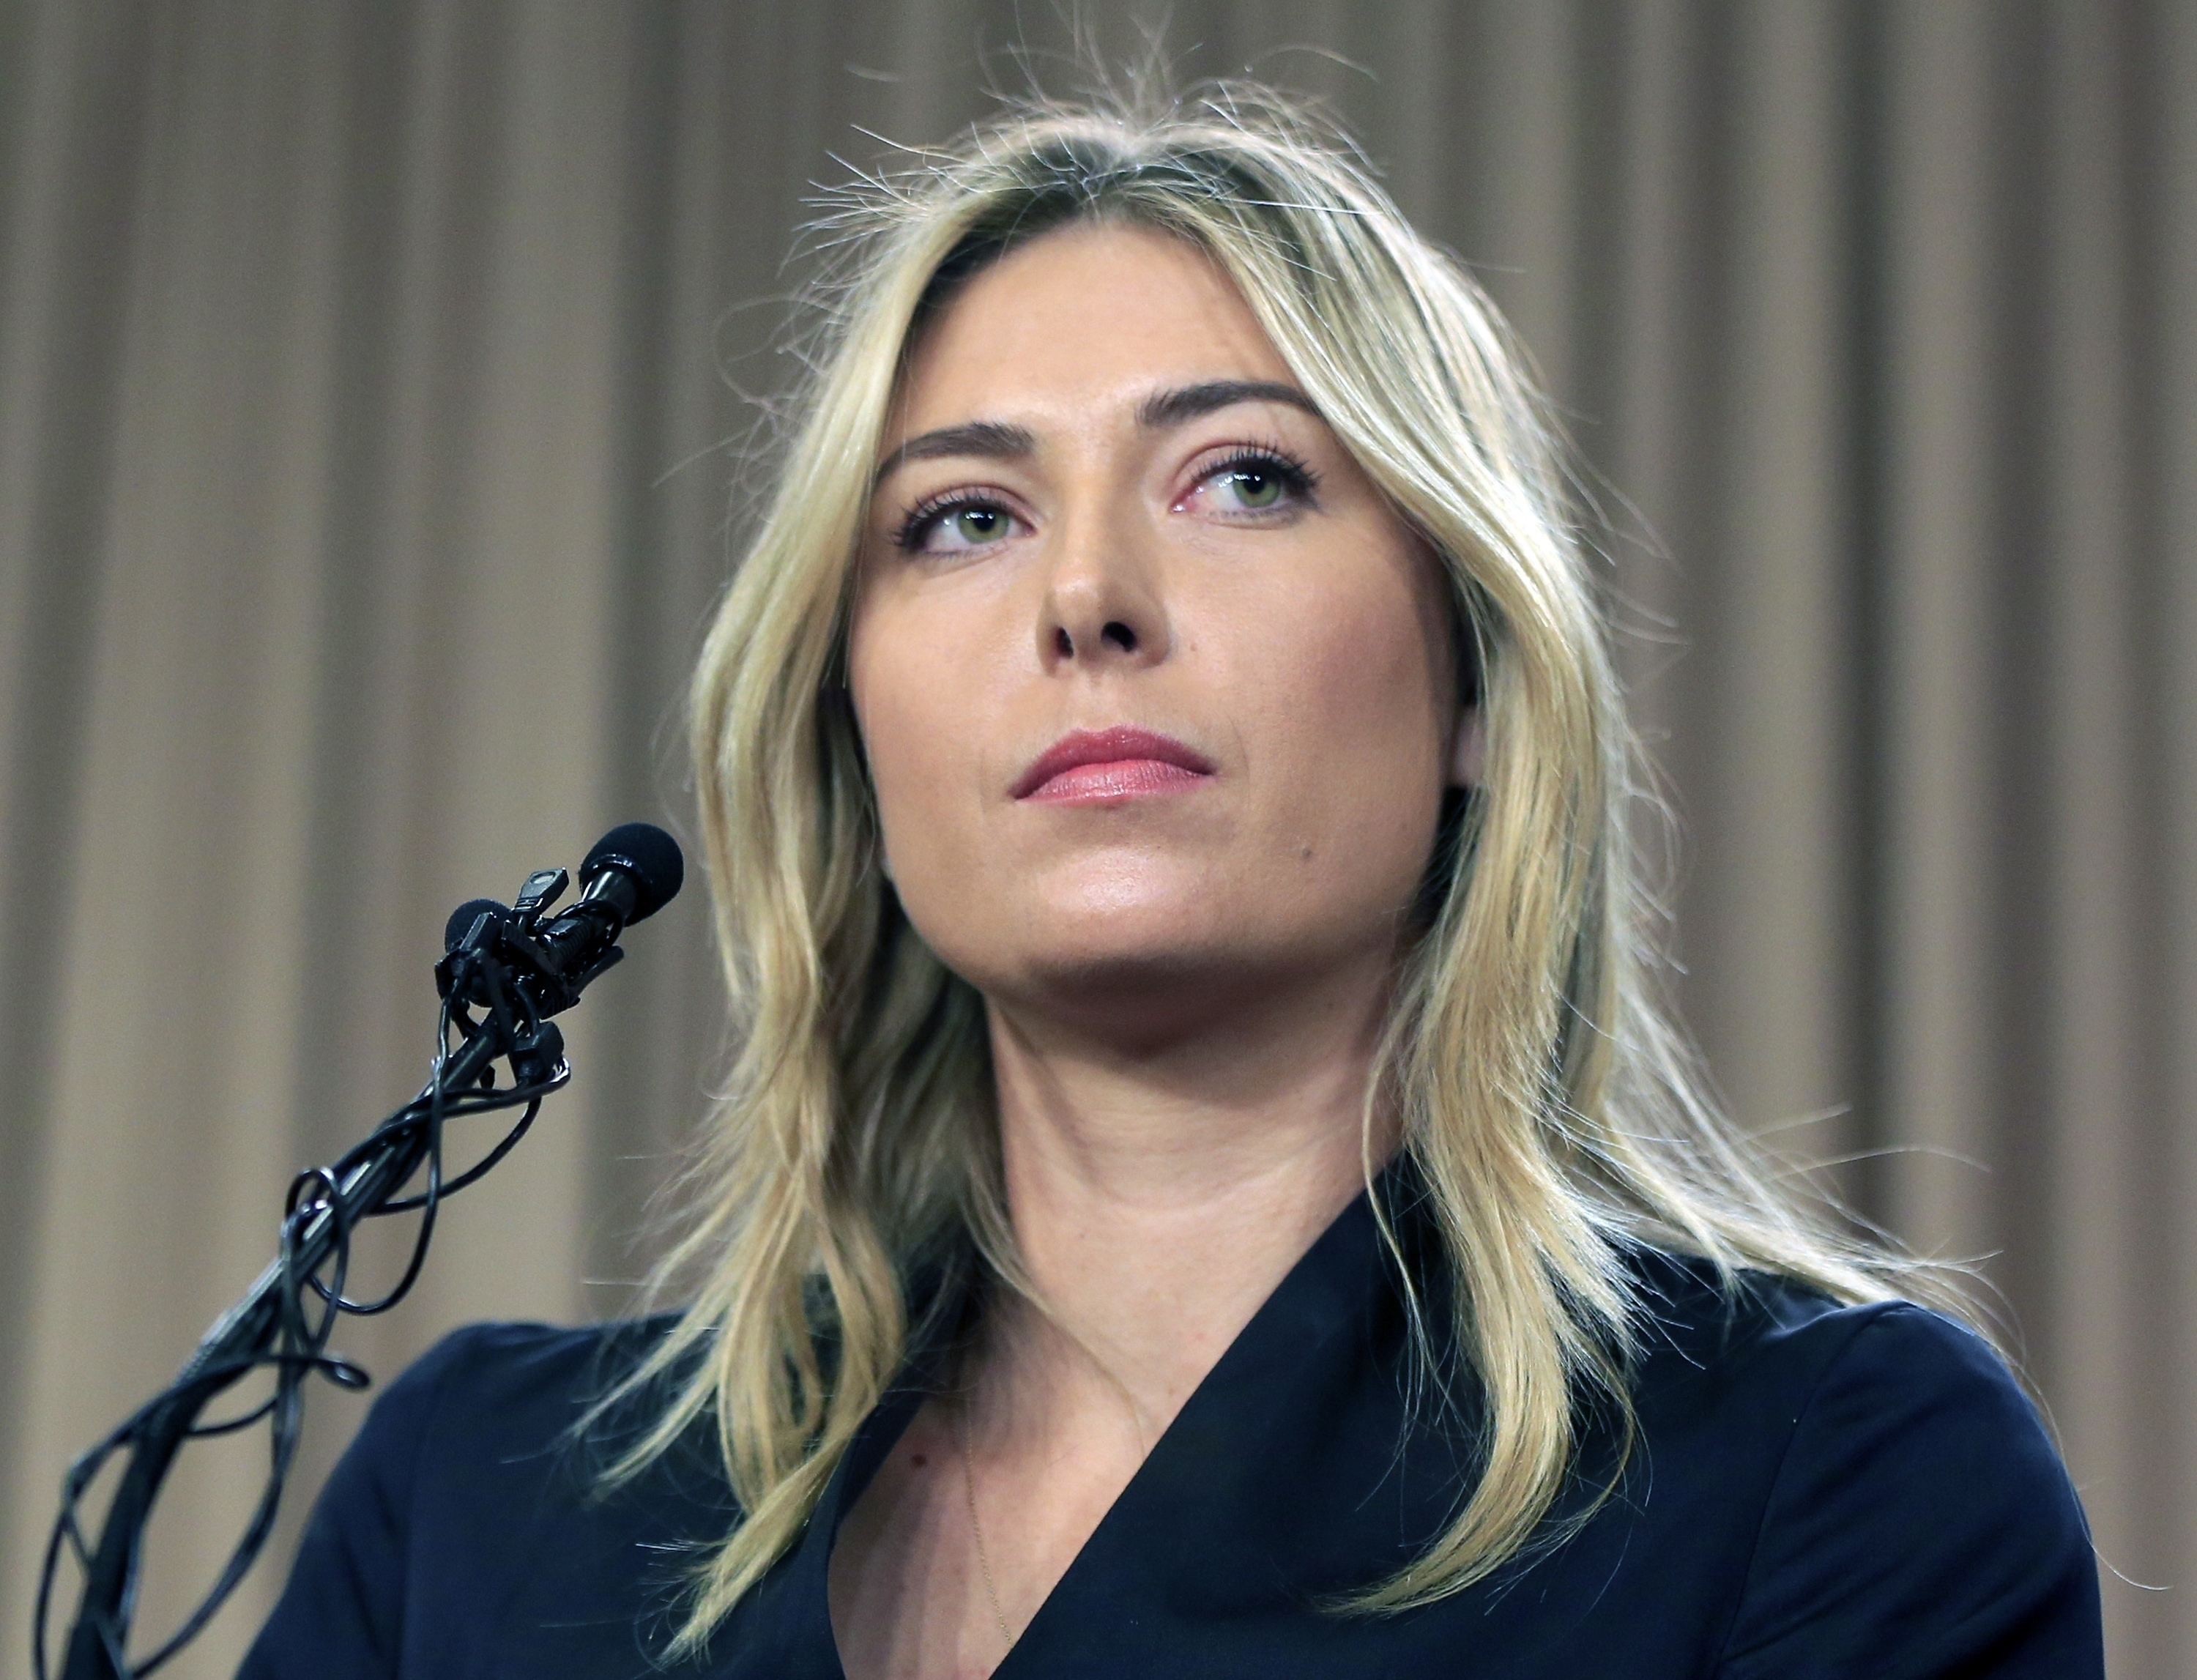 FILE - This is a Monday, March 7, 2016 file photo showing tennis star Maria Sharapova speakings about her failed drug test at the Australia Open during a news conference in Los Angeles. Sharapova says she's headed to Harvard Business School while she serv